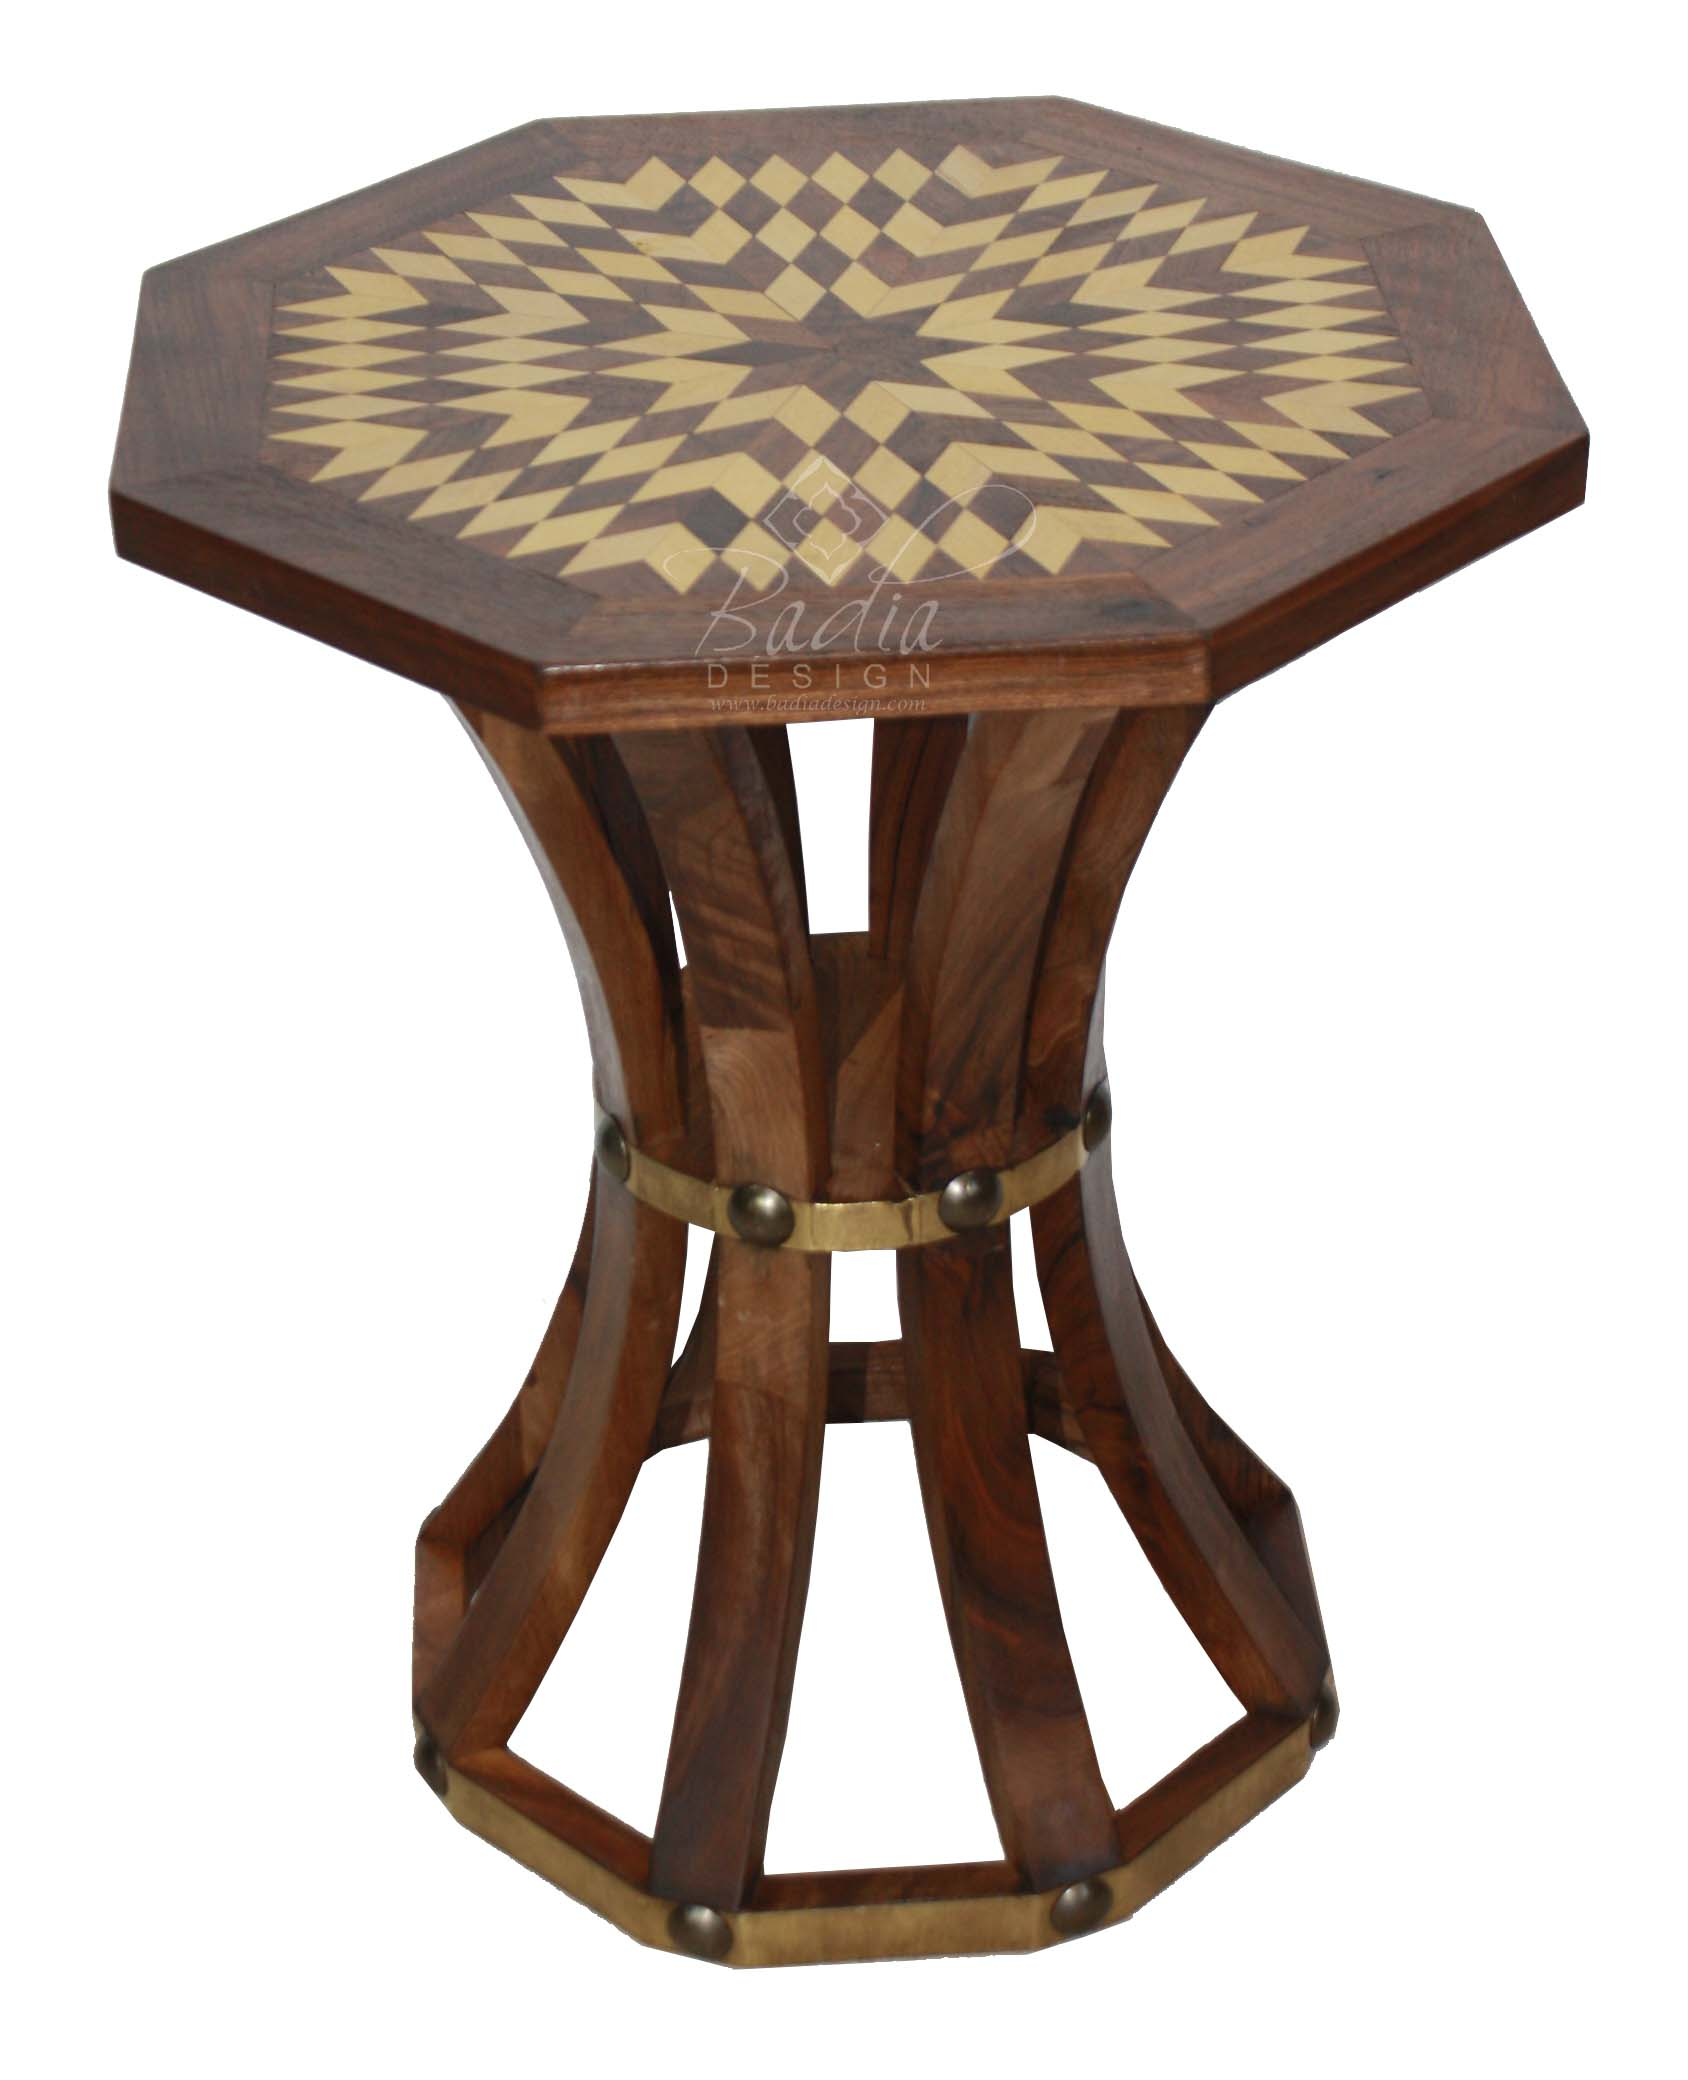 moroccan-hand-designed-wooden-side-table-cw-st051-1.jpg